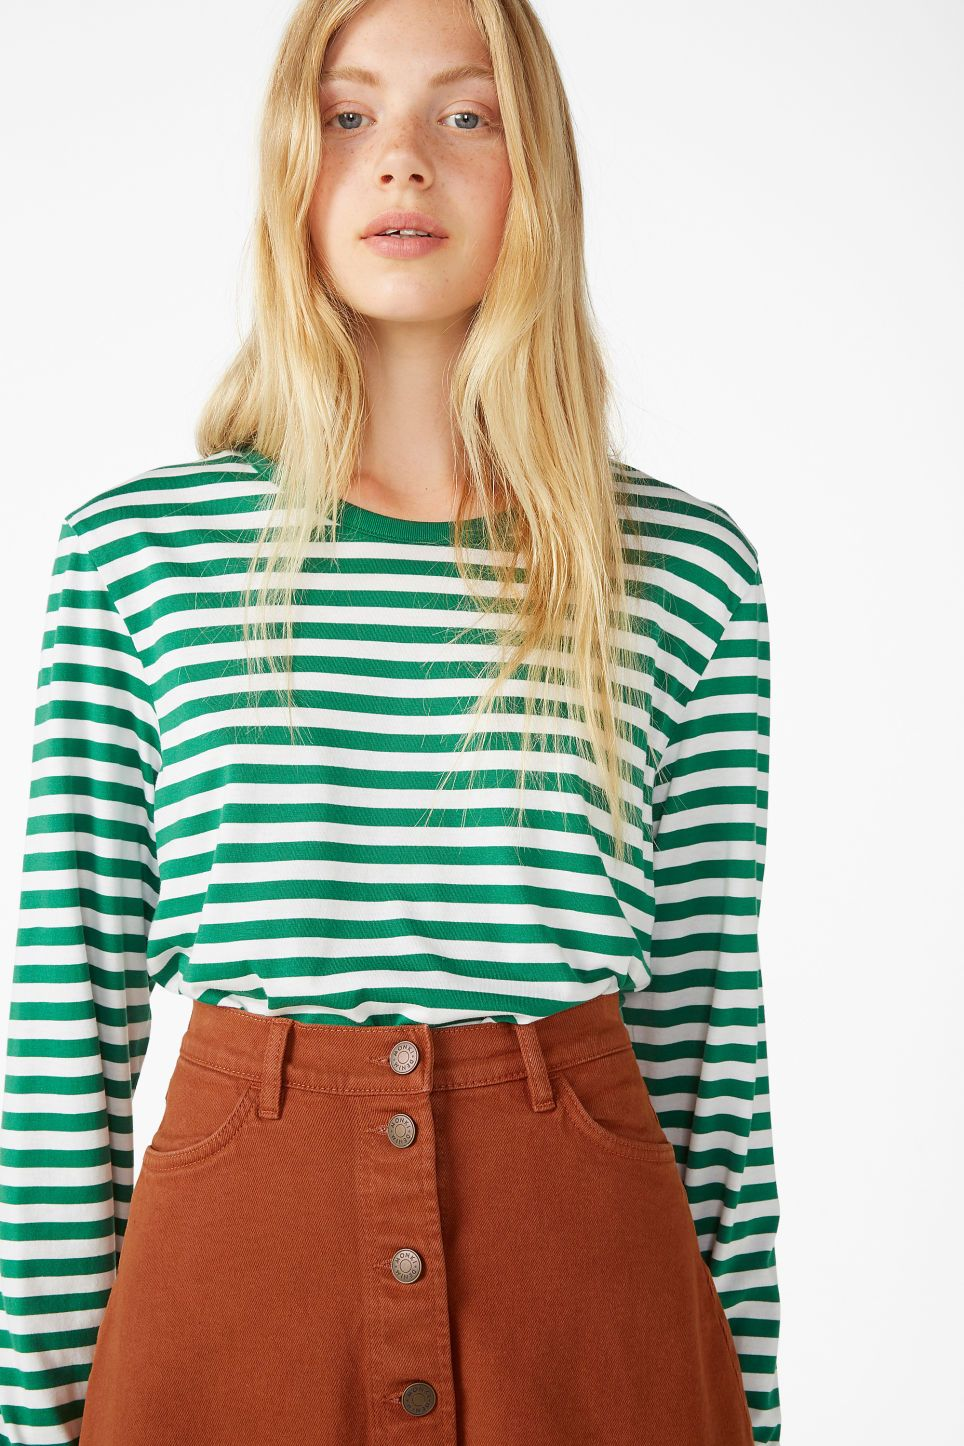 200f1ab1b Monki soft long-sleeved top in green - A long-sleeved striped top with a  ribbed rounded neck and a wide fit. The green and white stripes add to a  classy yes ...